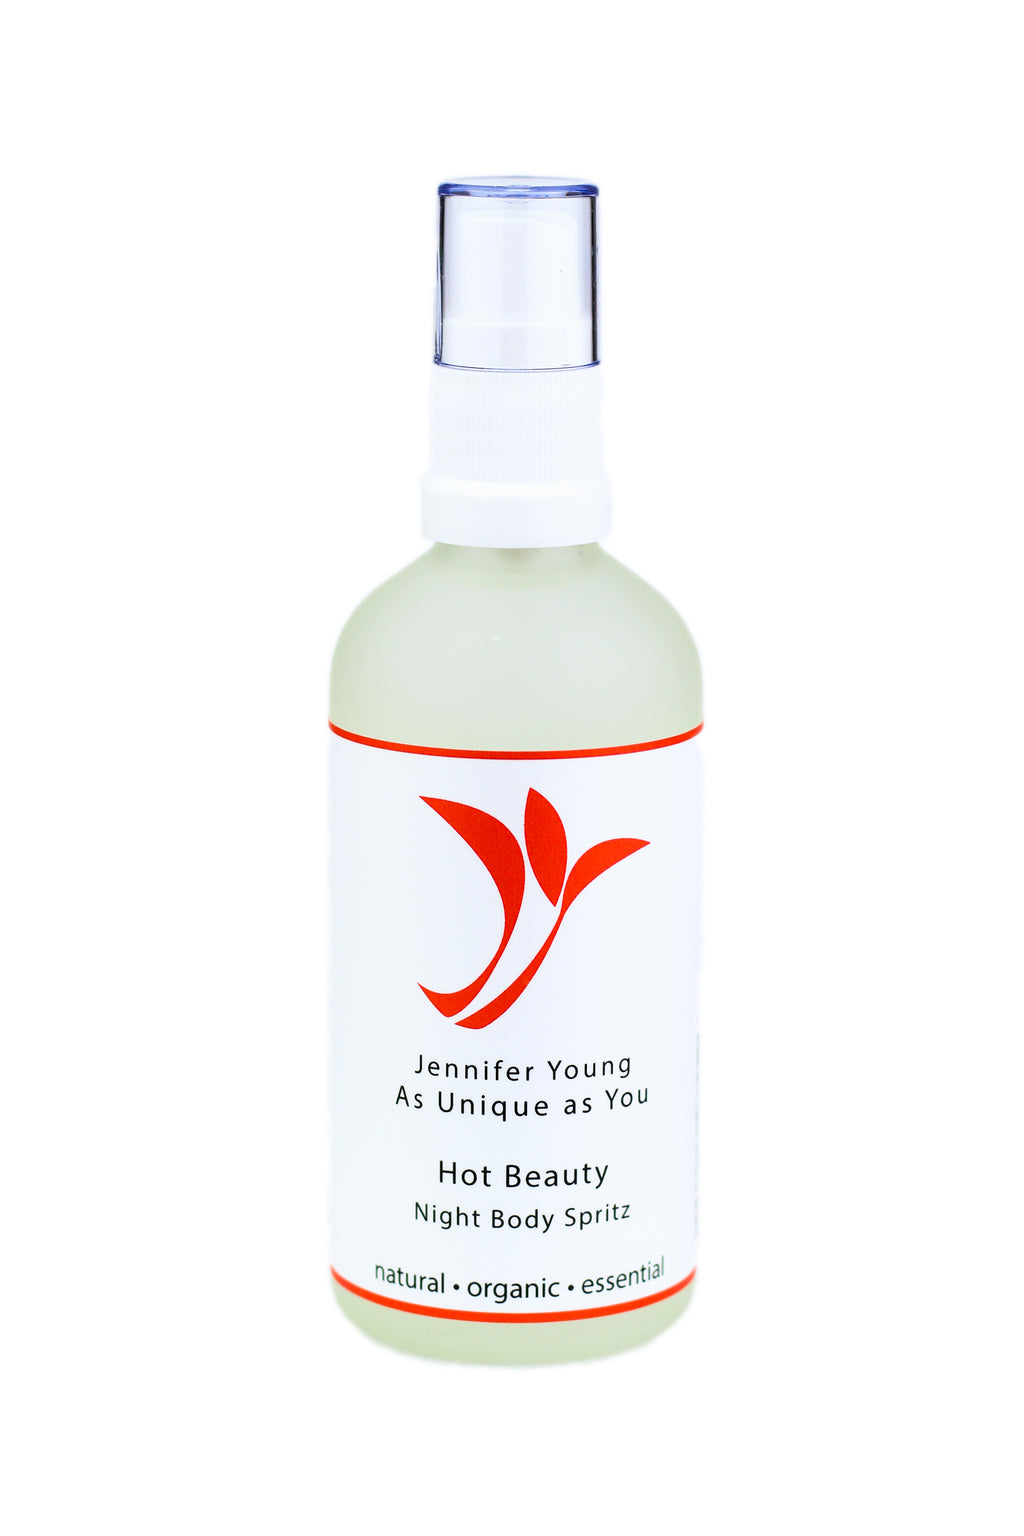 Hot Beauty by Jennifer Young - Night Body Spritz  -  (100g)